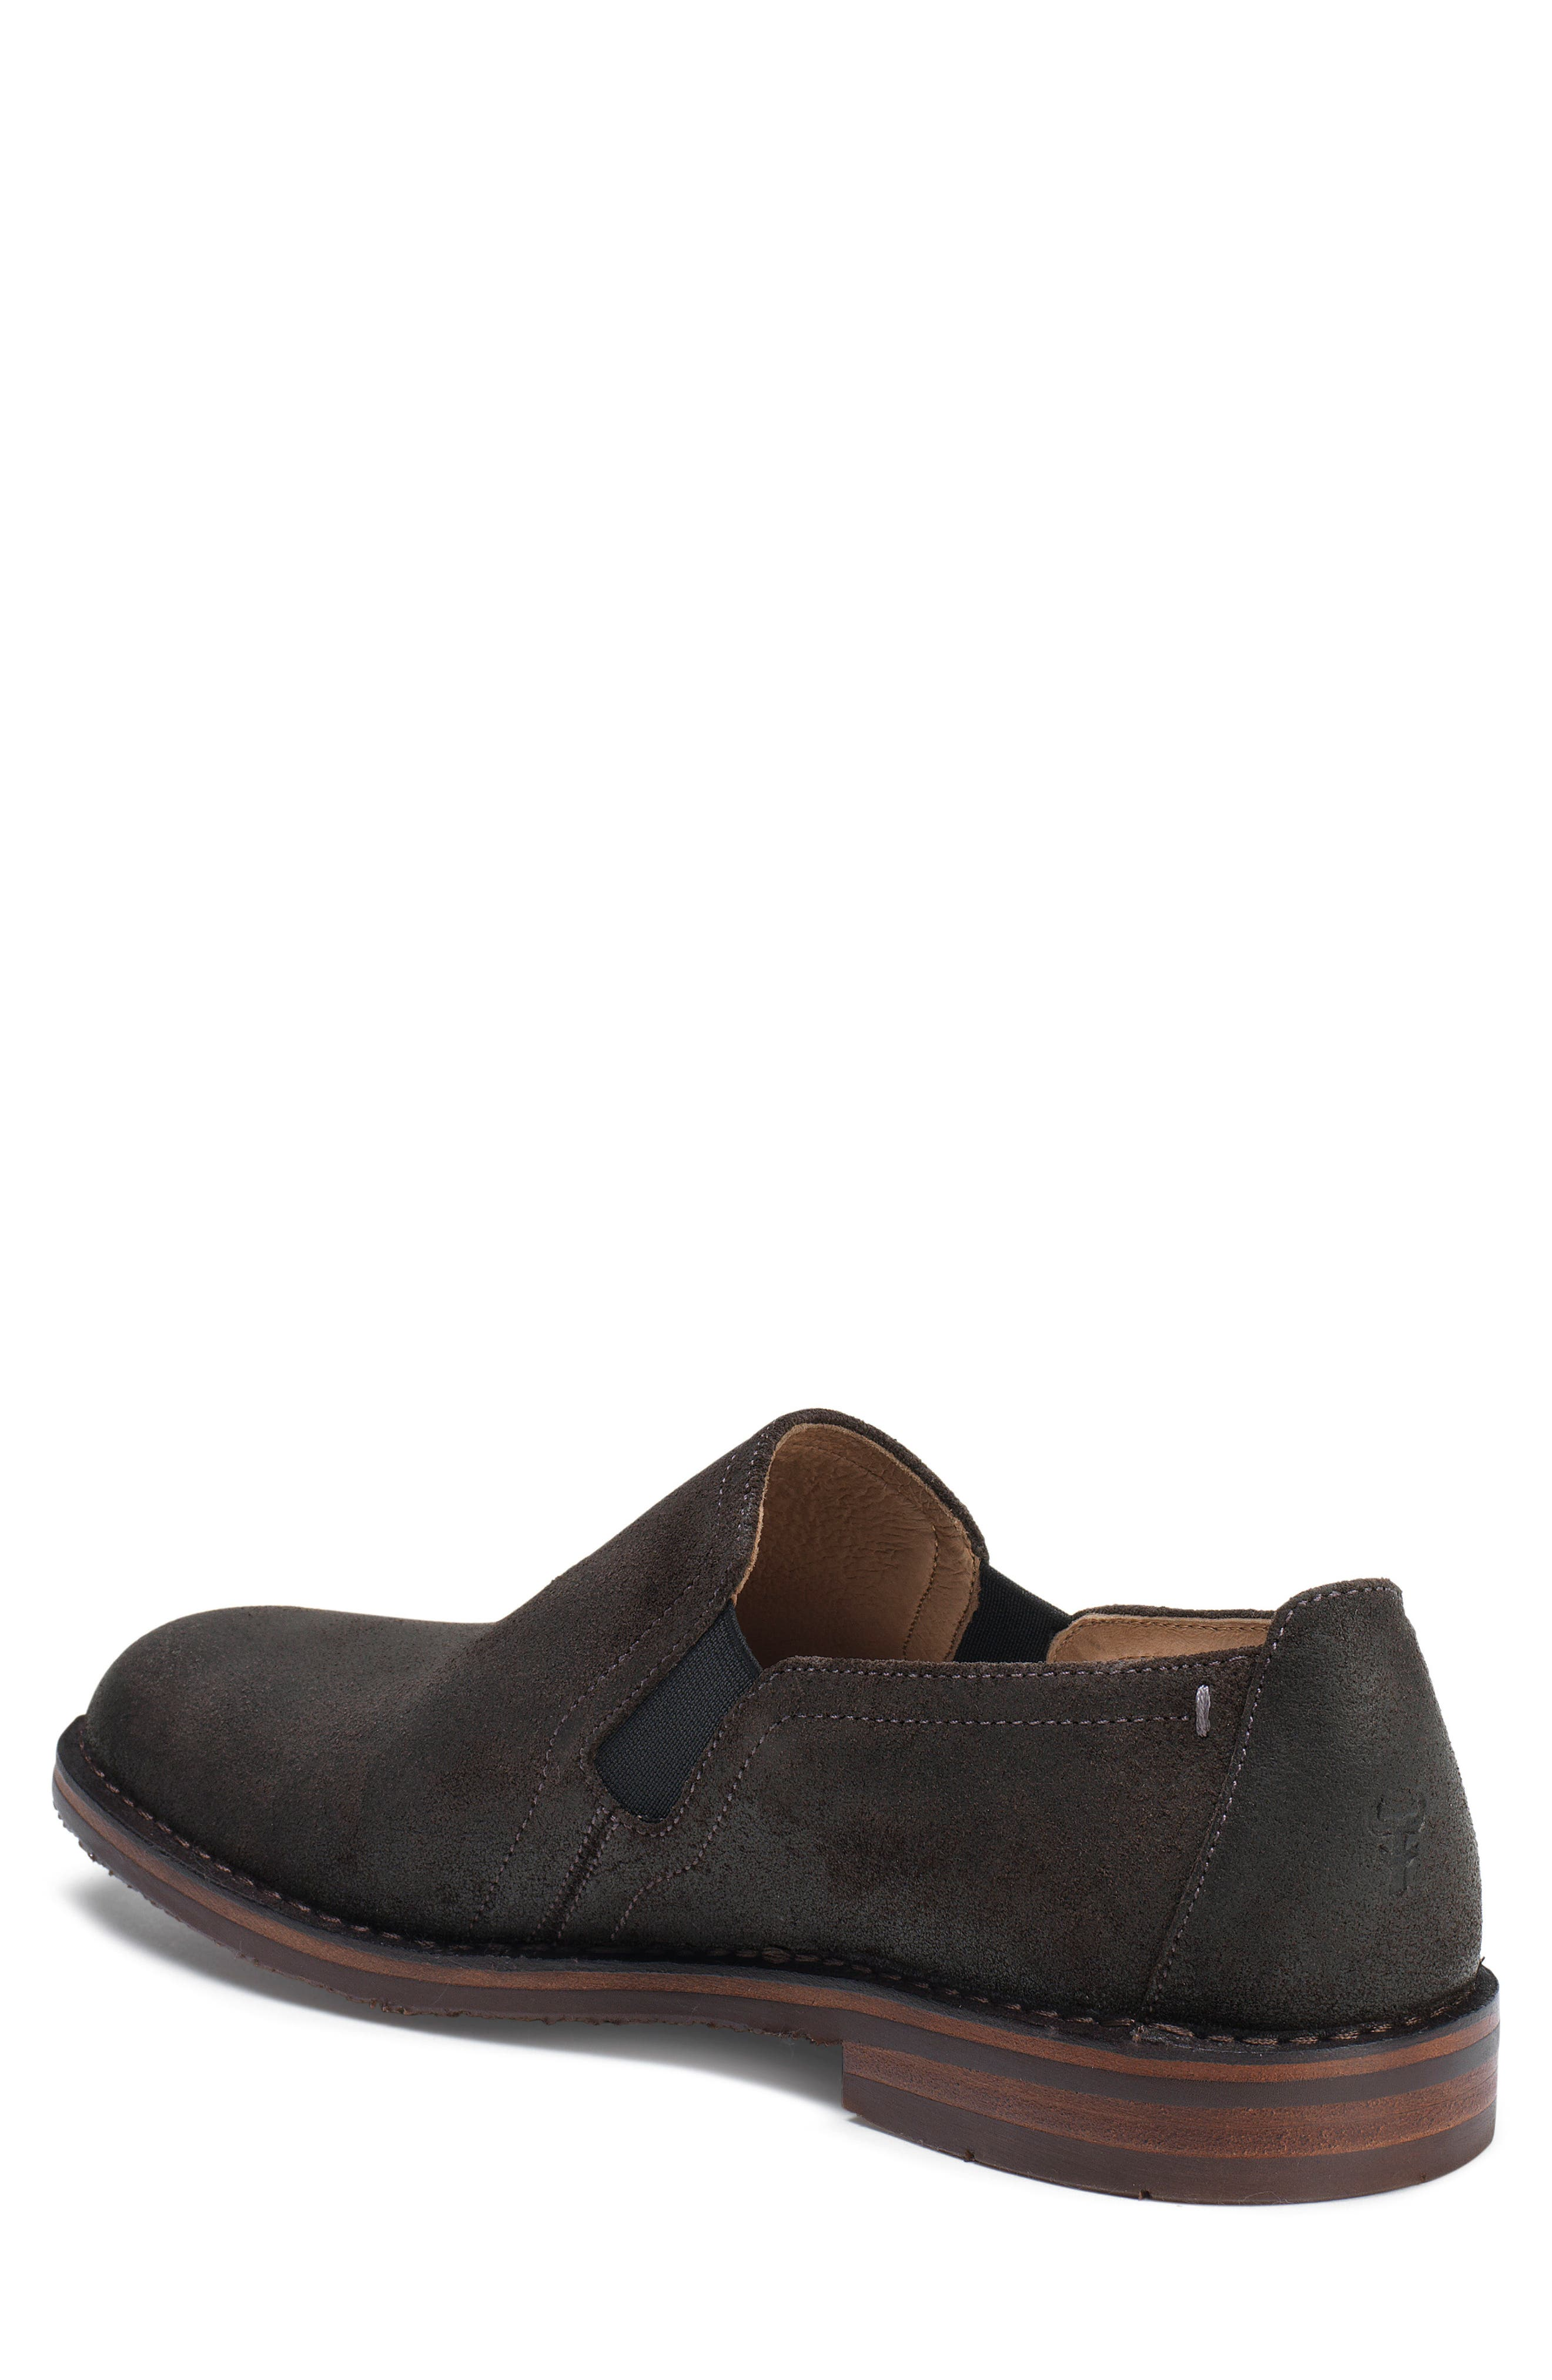 'Blaine' Venetian Loafer,                             Alternate thumbnail 2, color,                             GRAY WAXED SUEDE